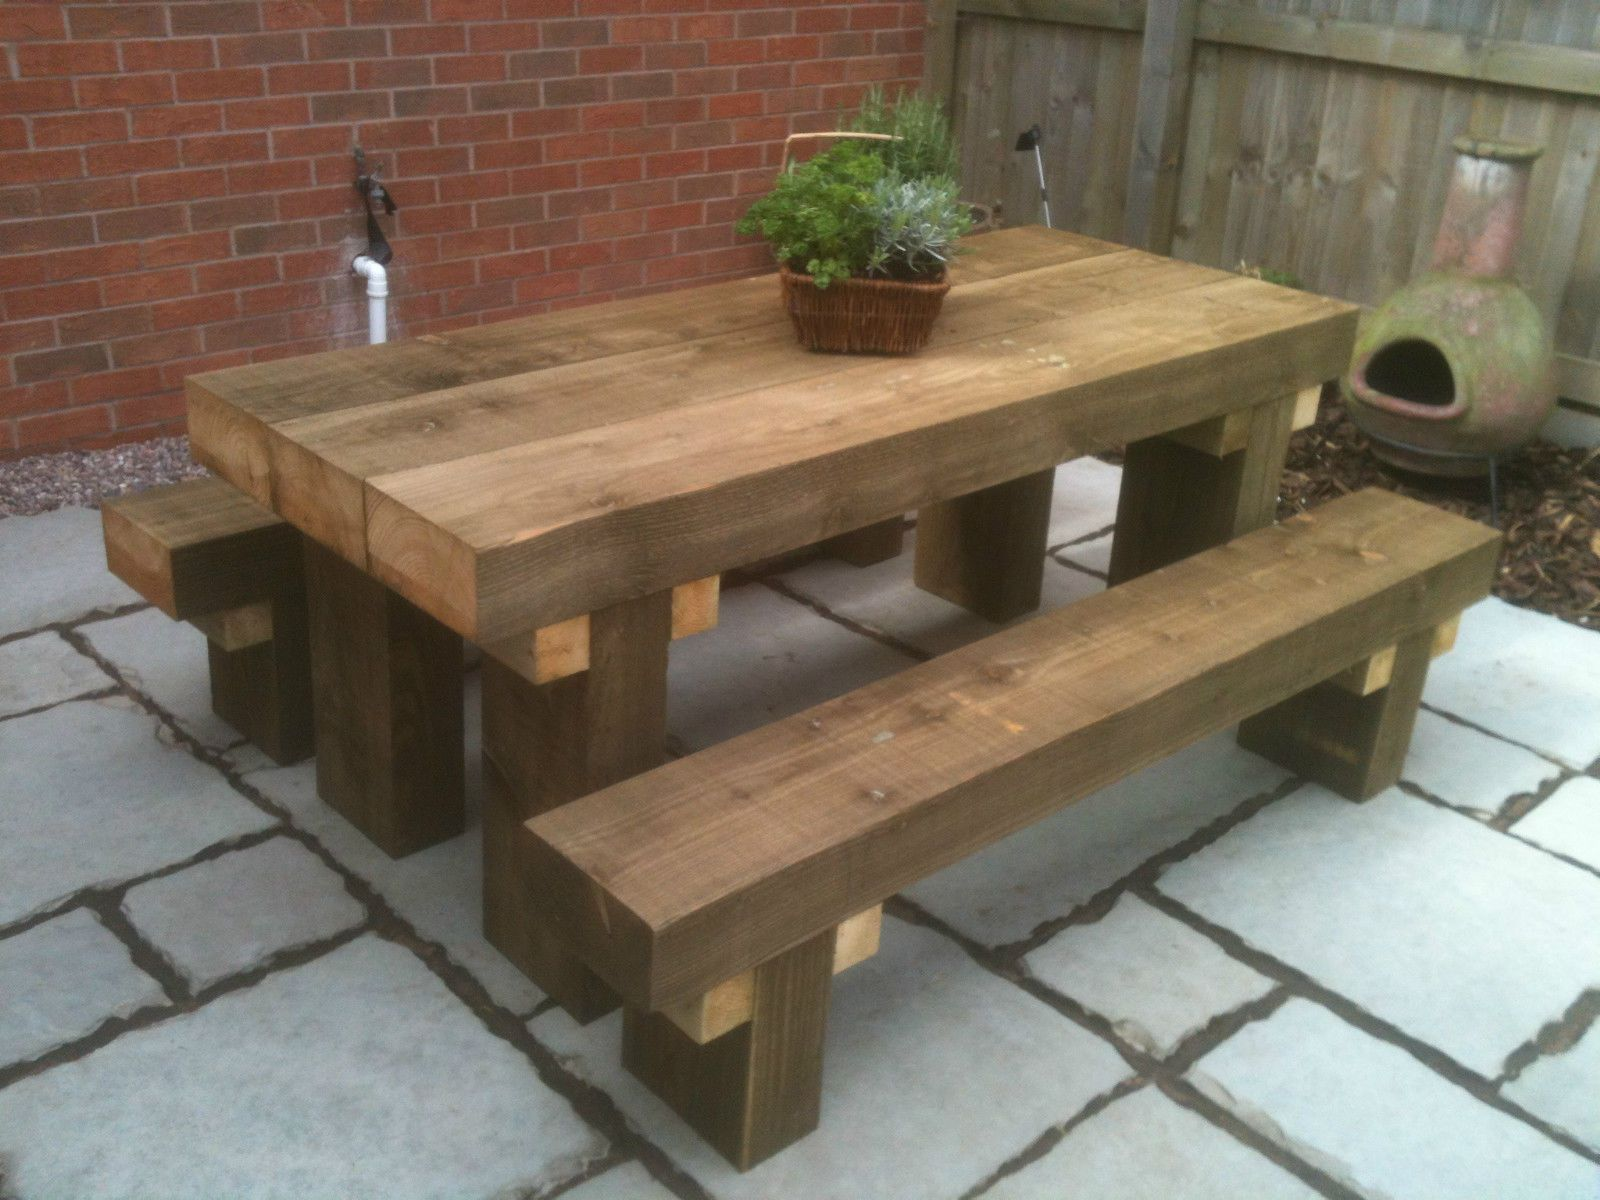 SLEEPER PICNIC TABLE & SEATS 9FT LONG CHUNKY TANALISED RUSTIC LOOK